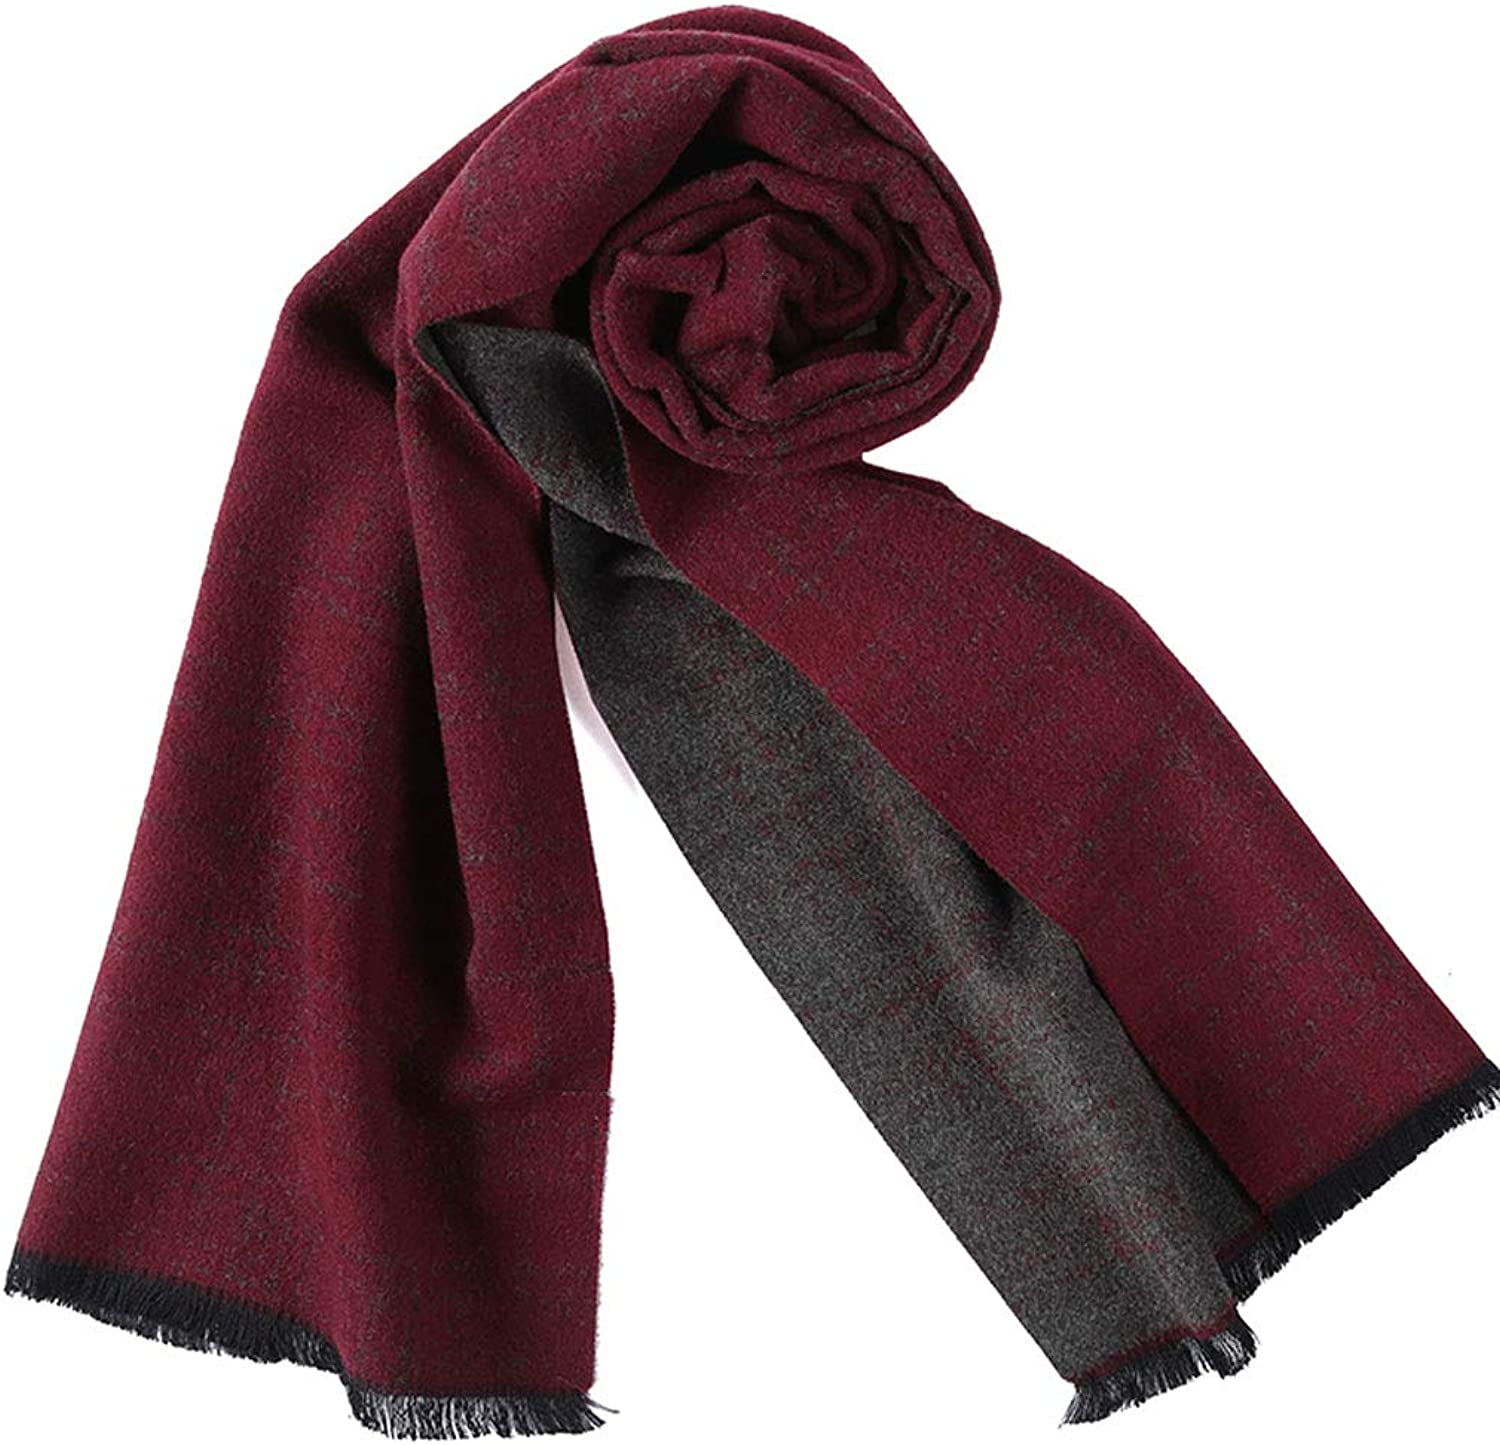 ZDD Winter Korean Brushed Tassel DoubleSided Jacquard Warm Wool Scarf (color   RED, Size   30x176cm)